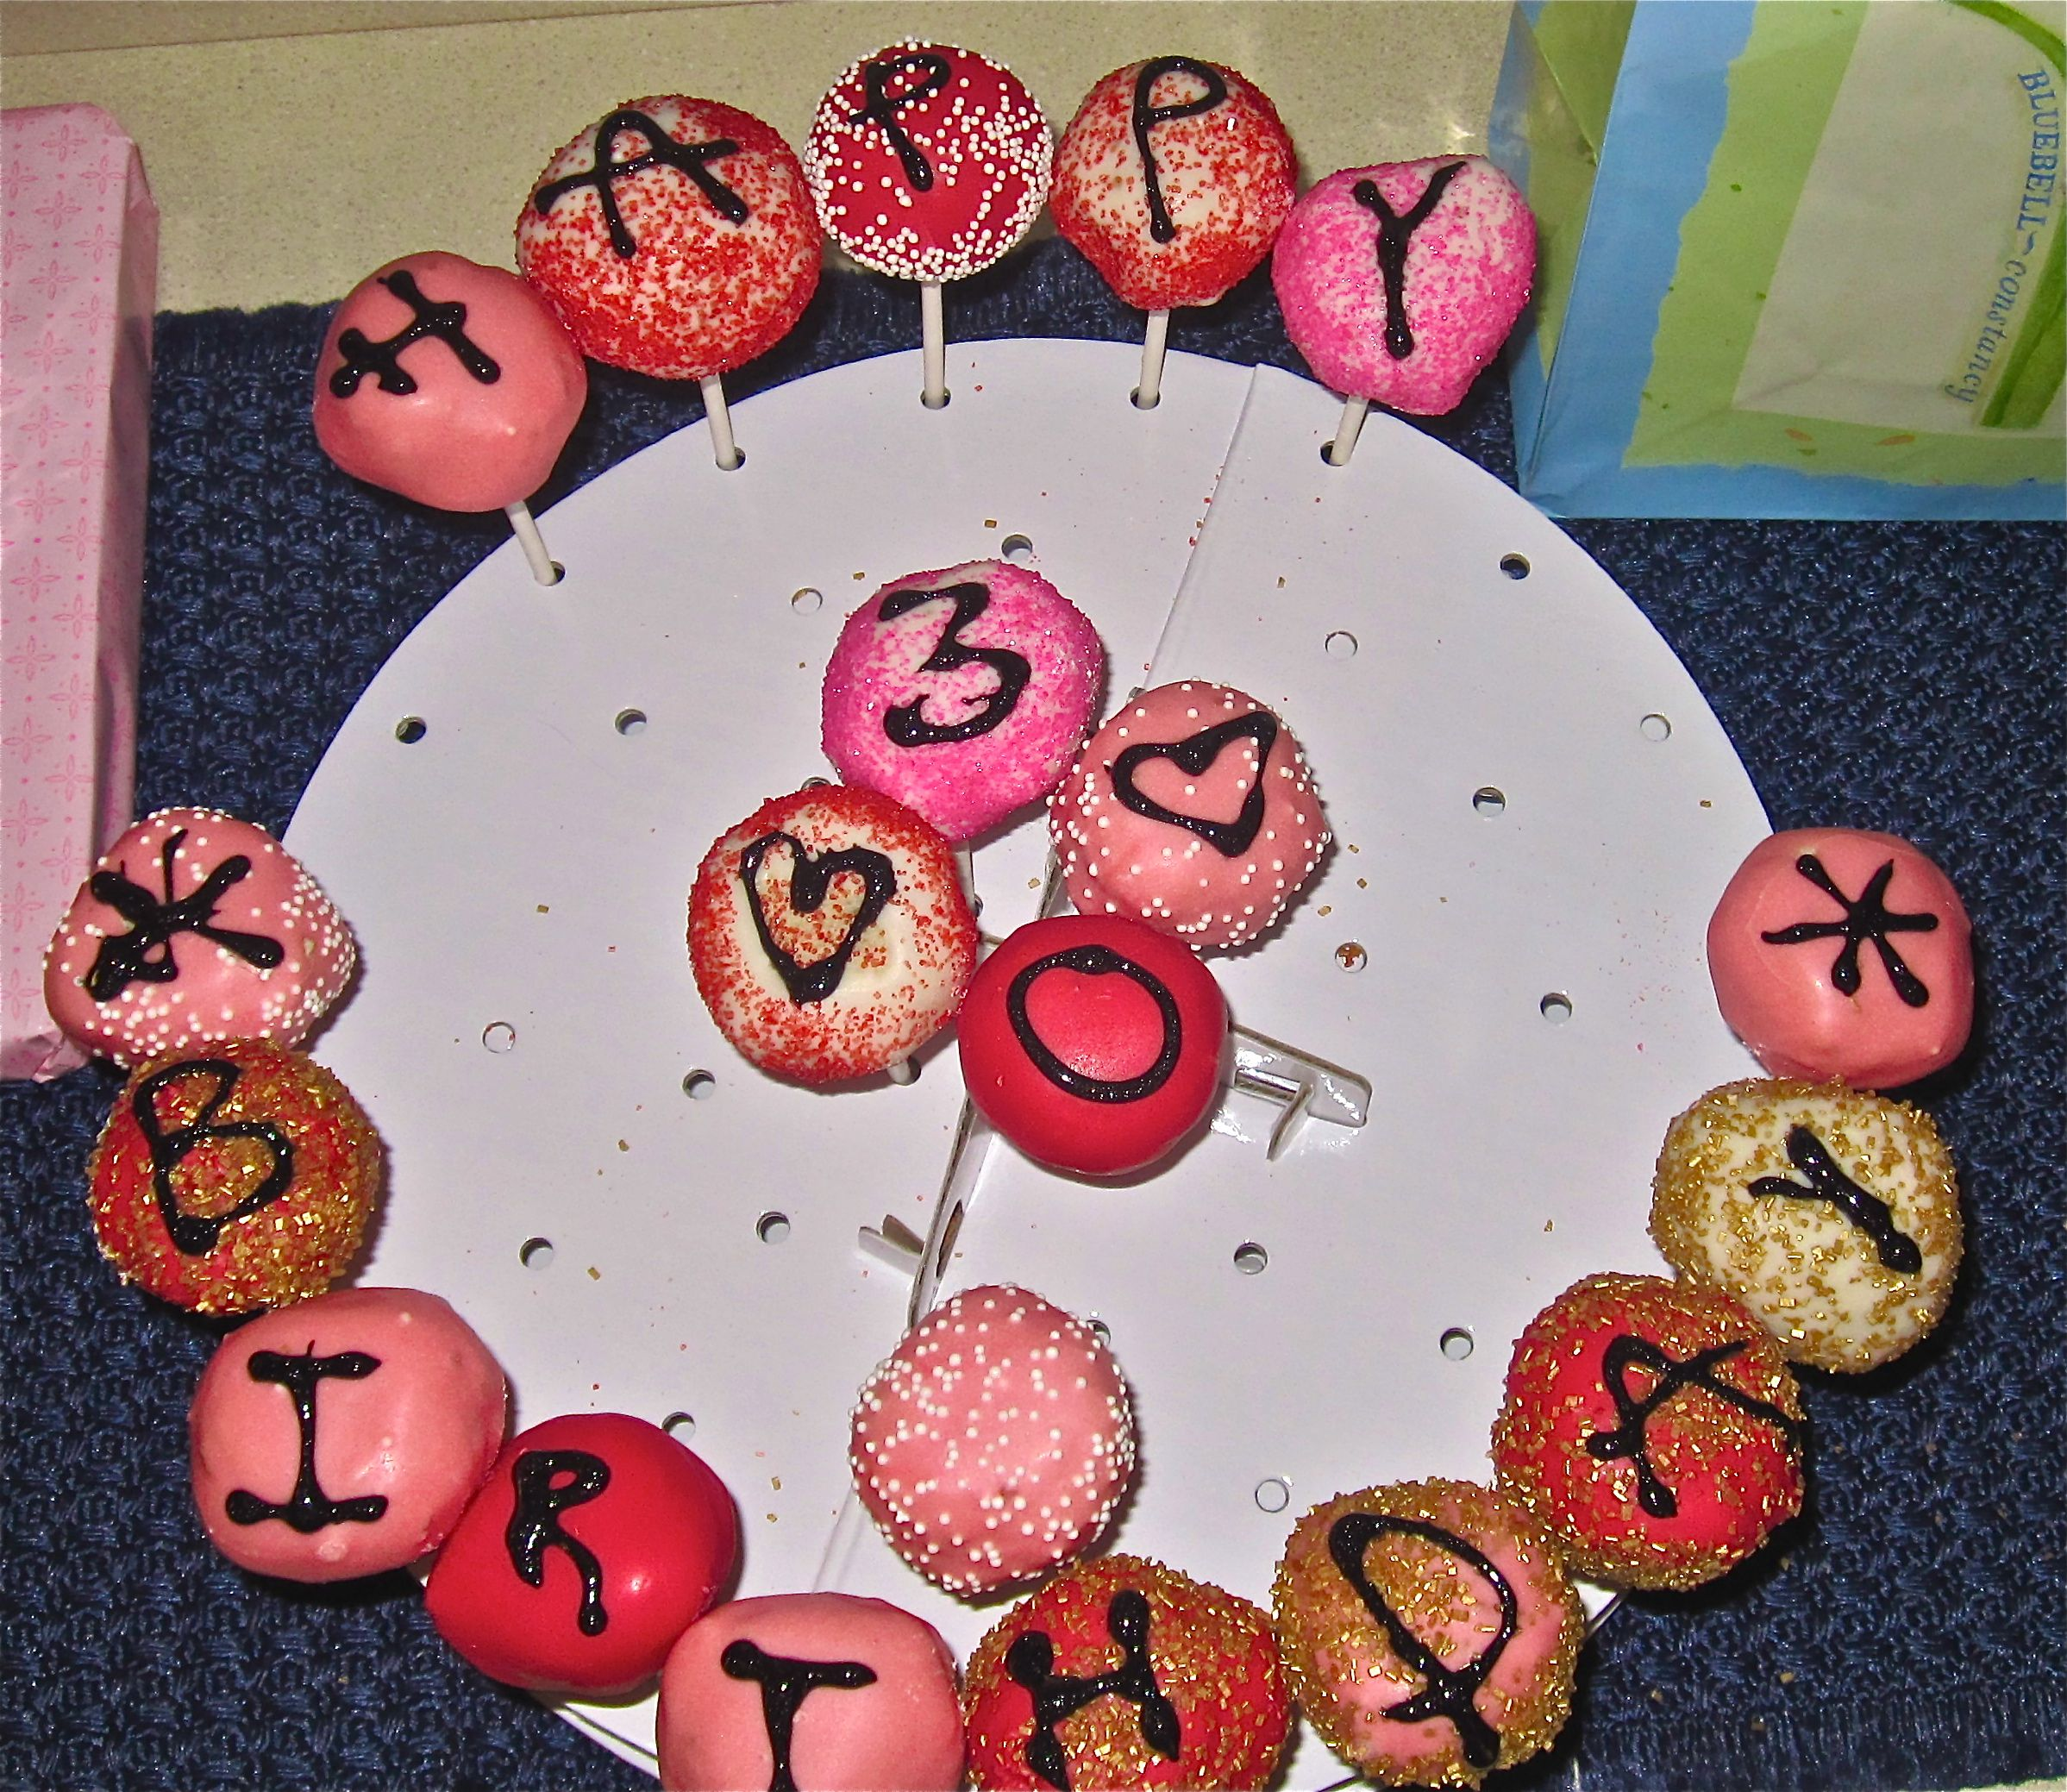 Happy Birthday Cake Pops In Pink Red Gold And White By Dhw Pops